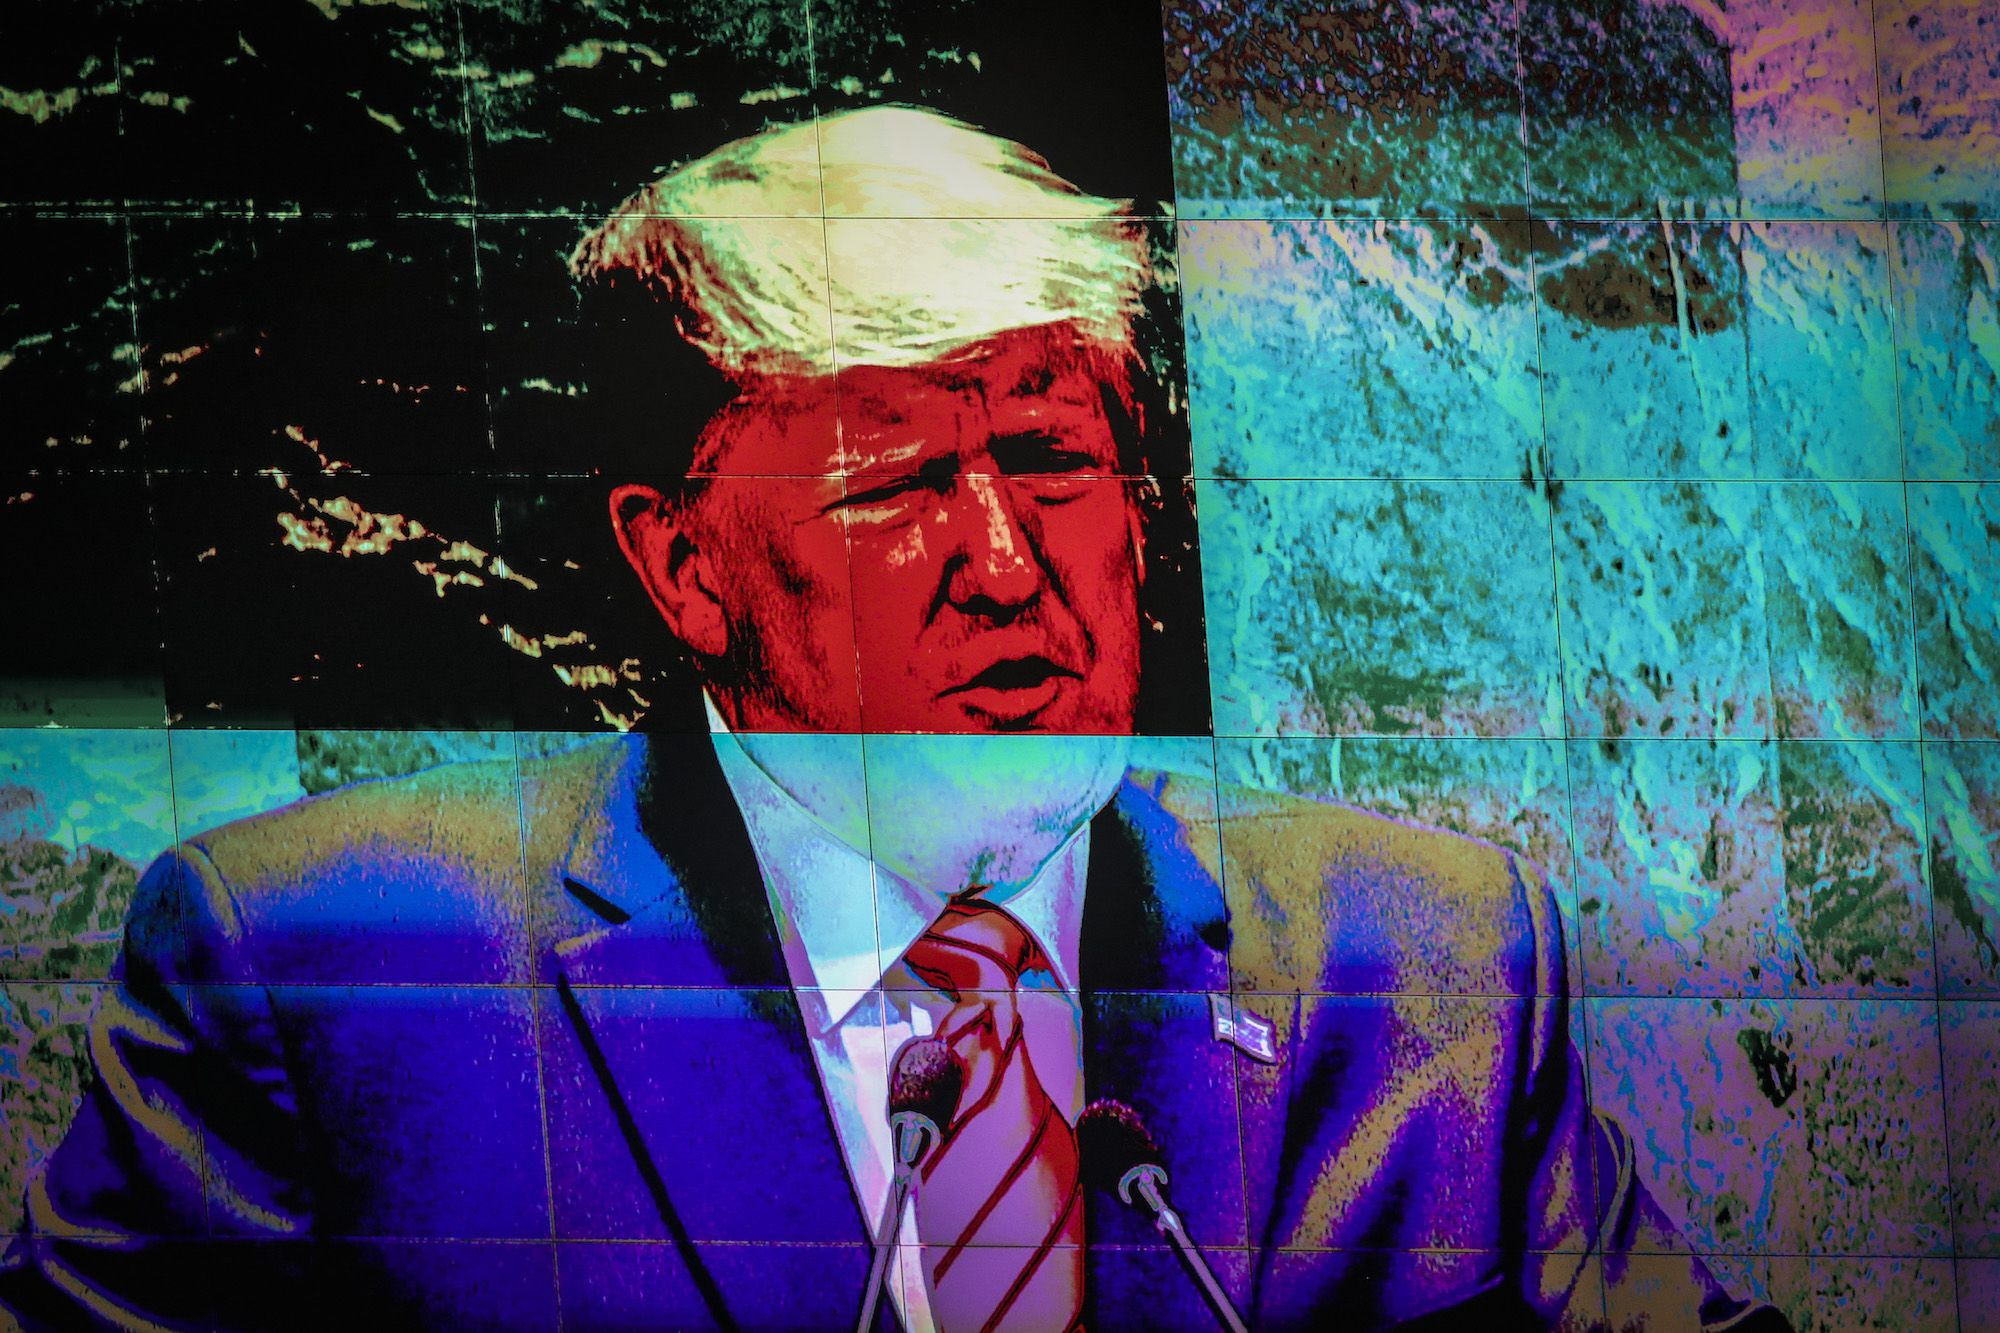 Trump's UN Speech Was a Glimpse of How He Views the World. It Was, Of Course, Insane.